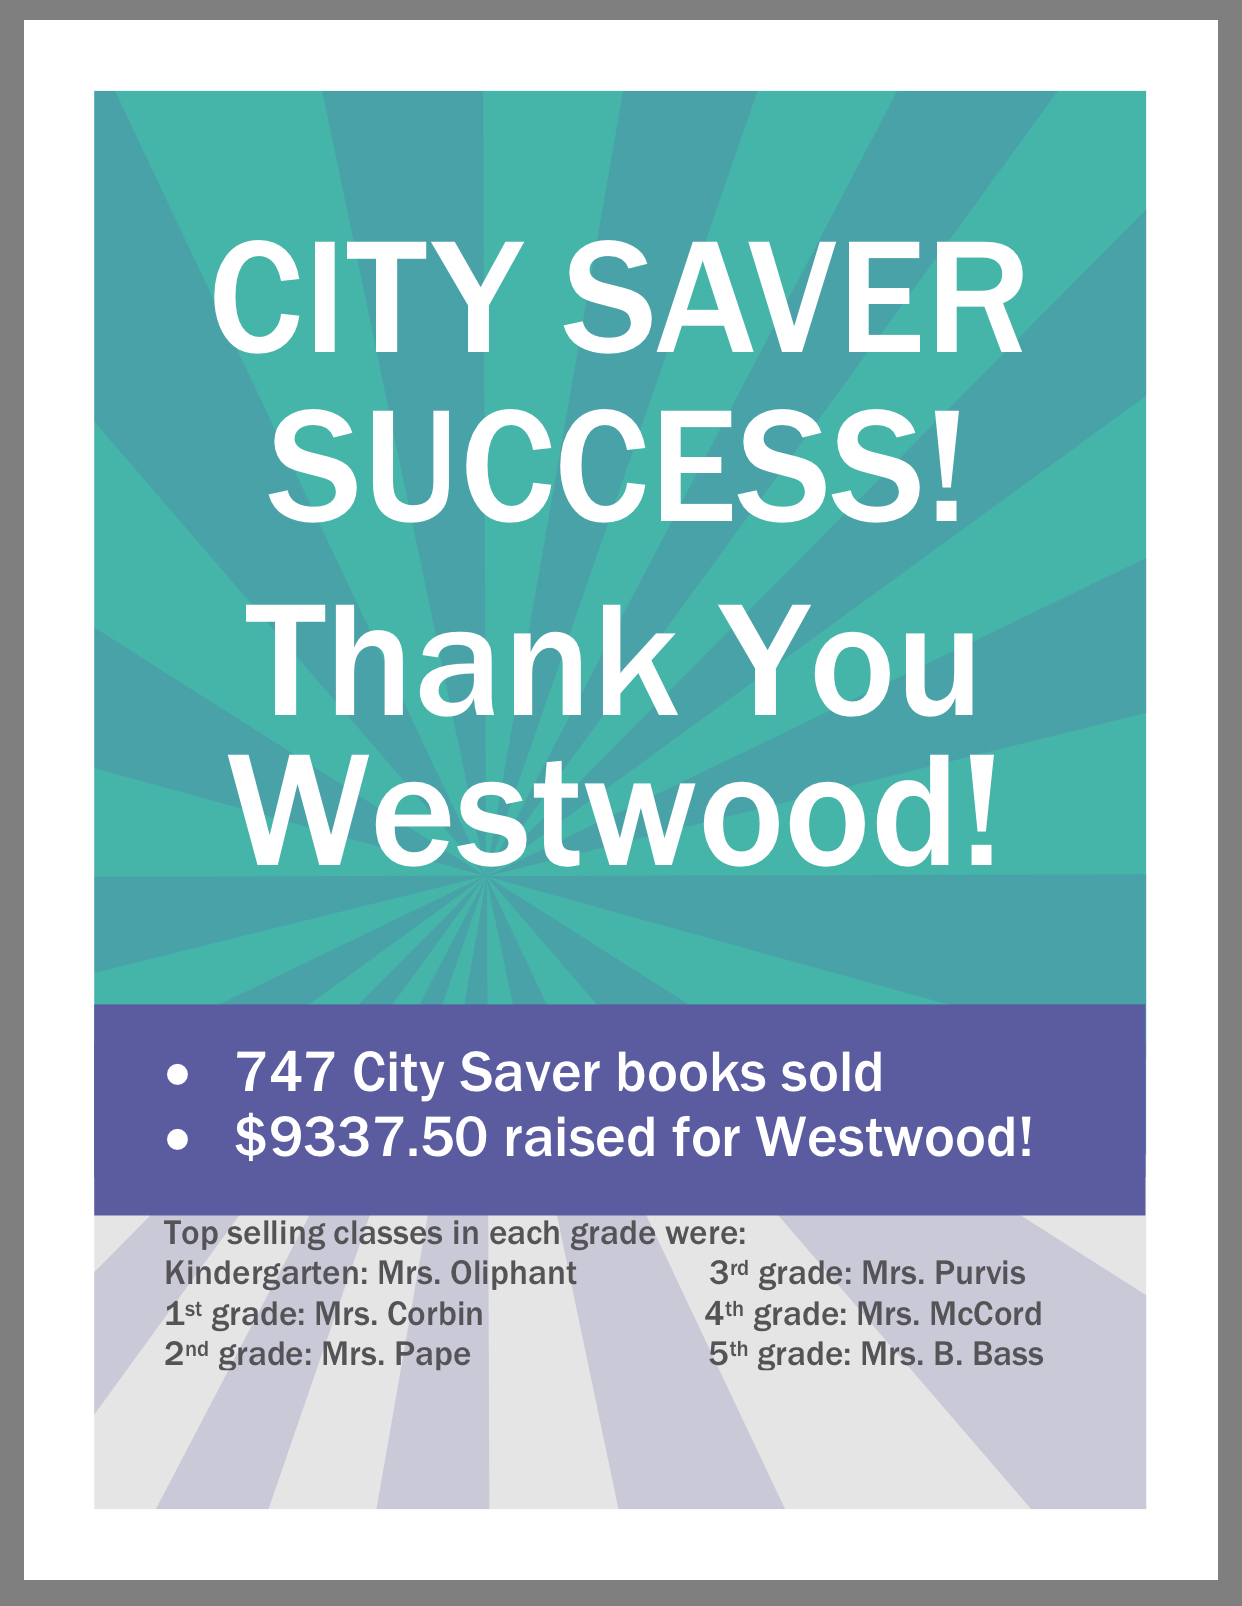 City Saver fundraiser raised $9337.50 for Westwood!!